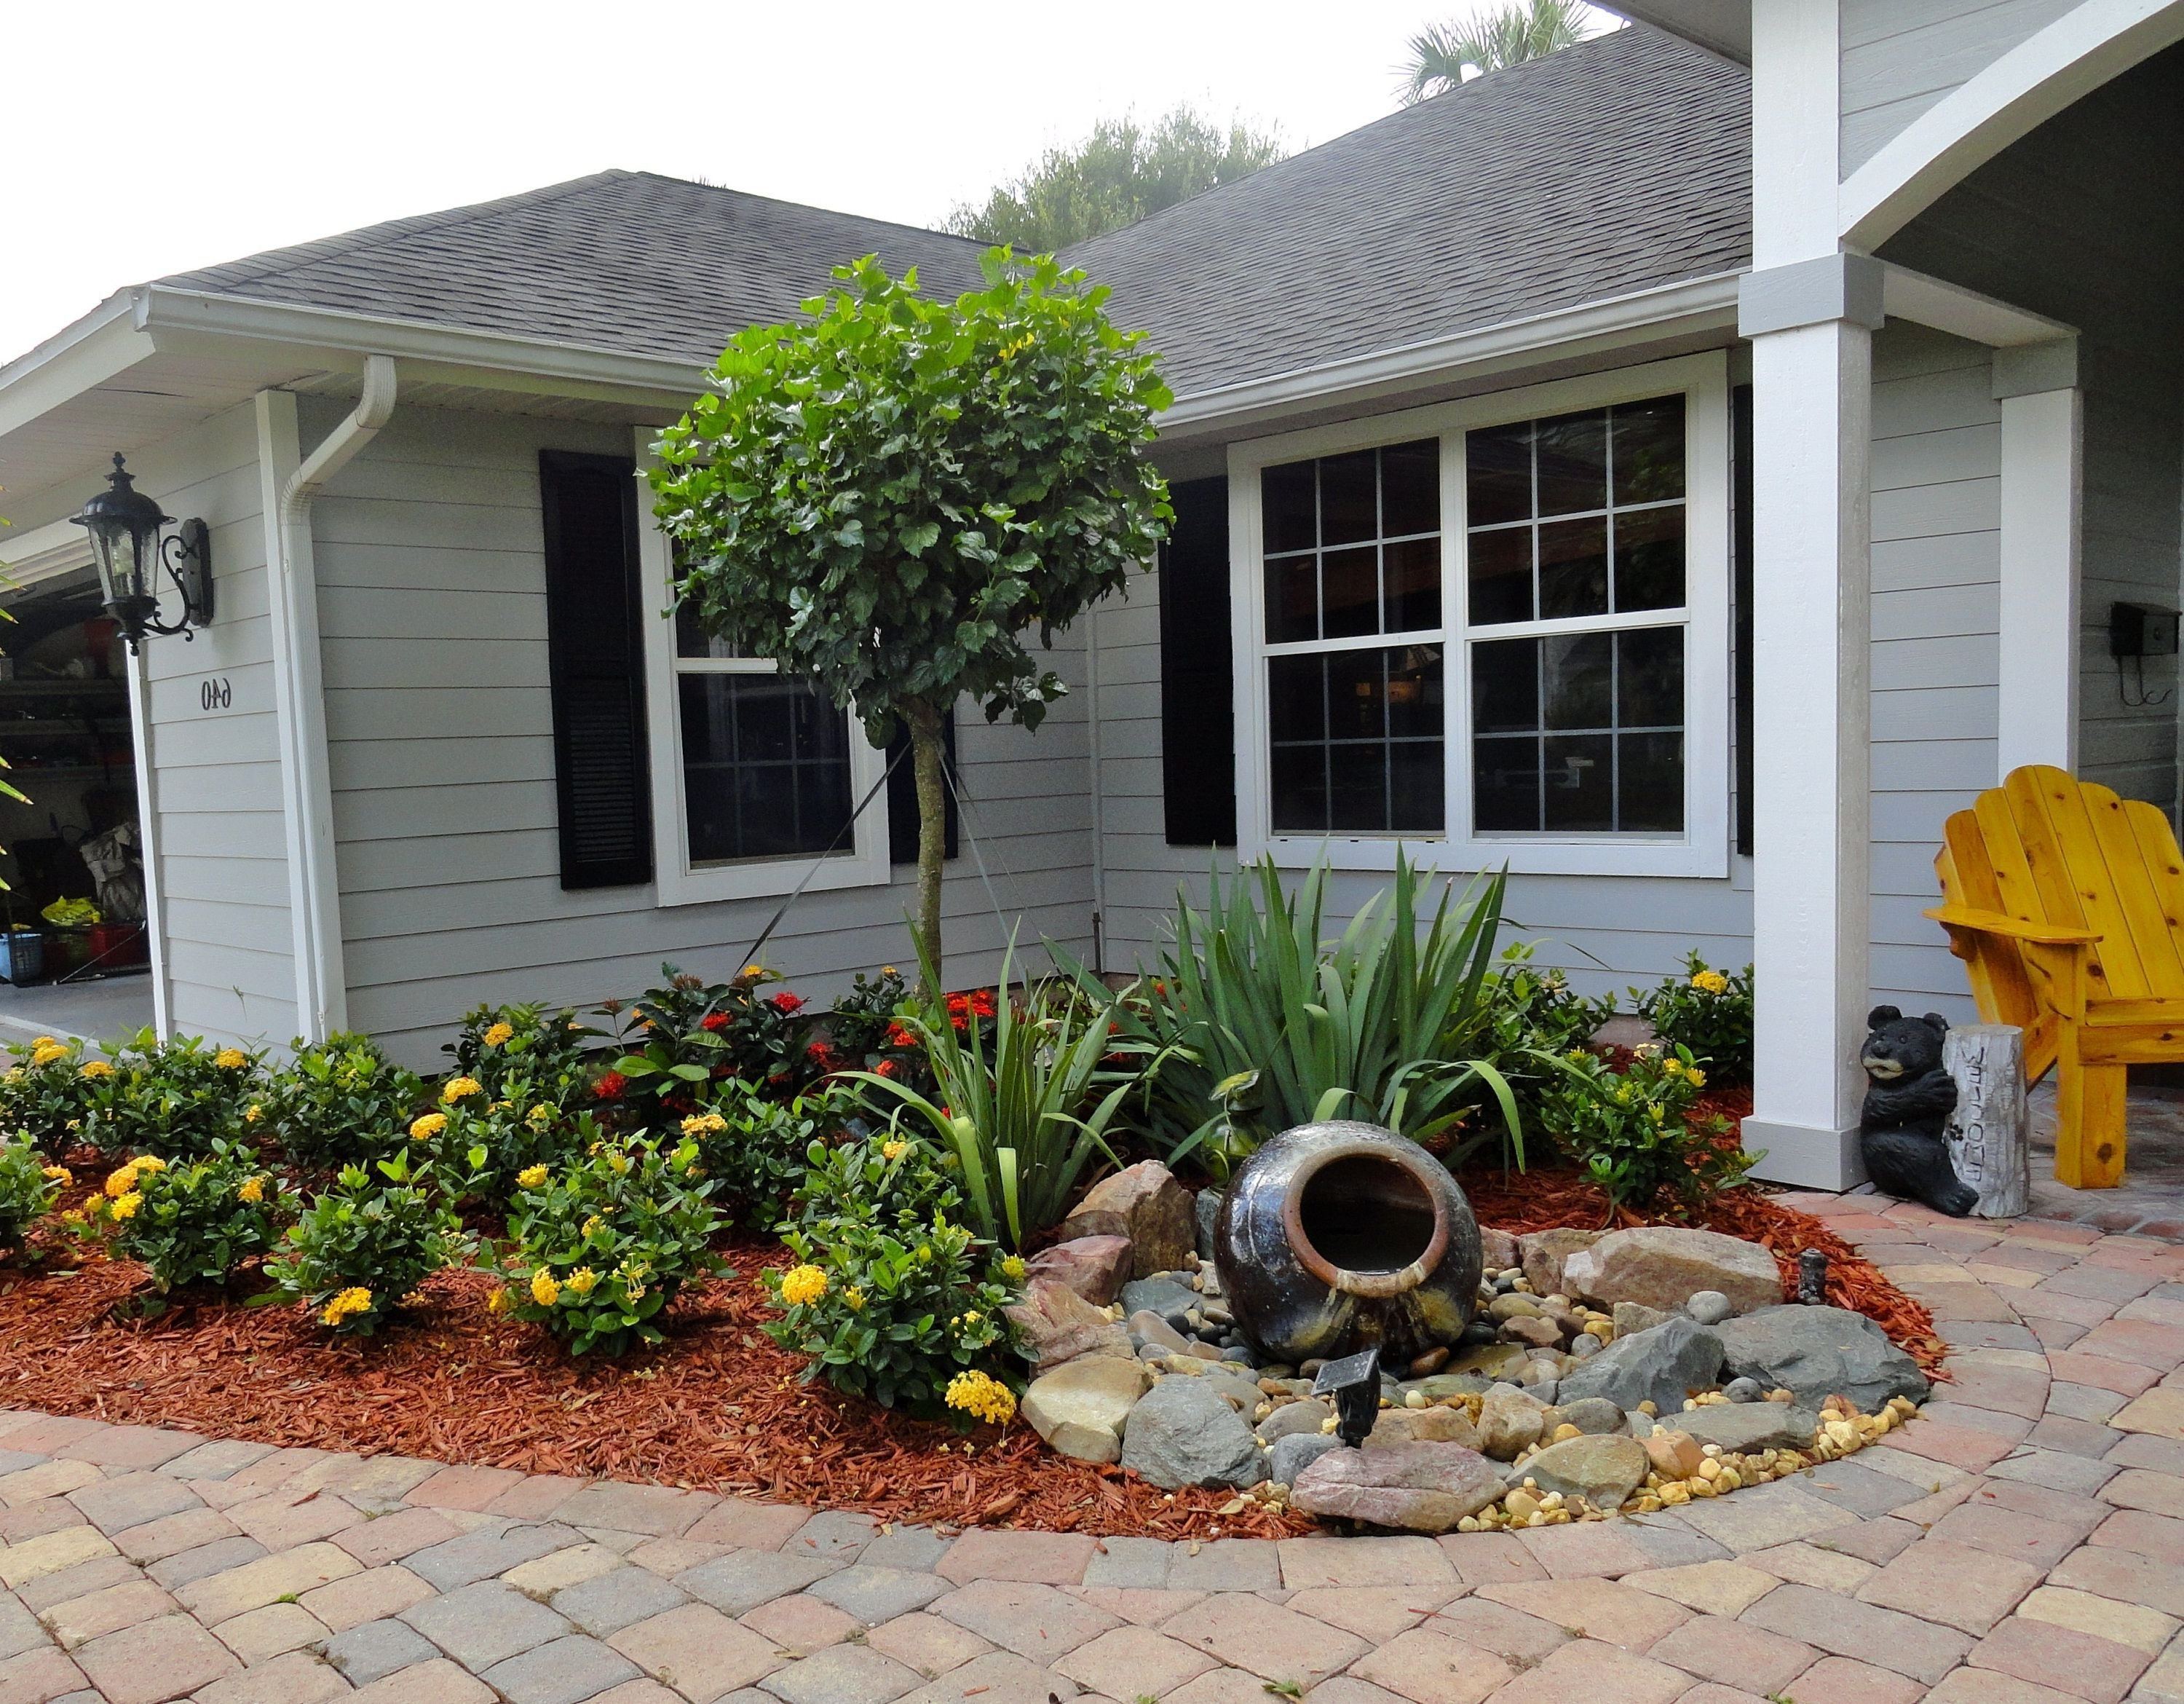 Front Yard Landscaping Ideas On A Budget Some Ideas To Consider Front Yard Landscaping Design Easy Landscaping Front Garden Design